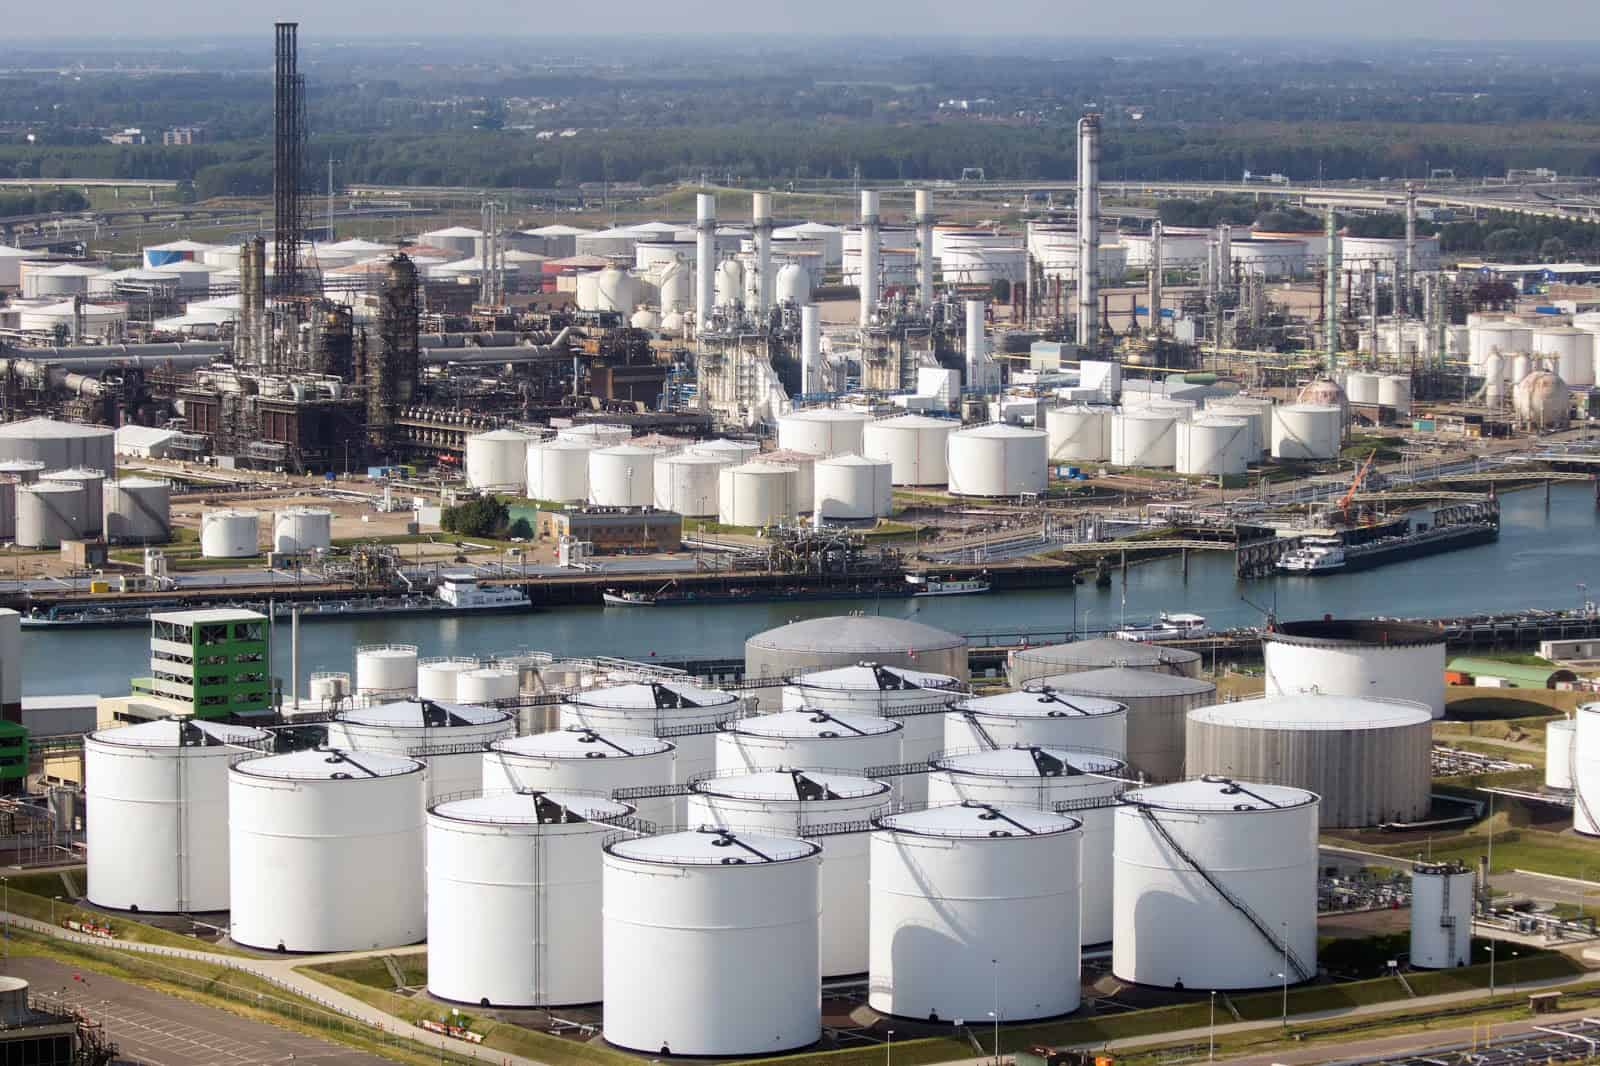 ROTTERDAM - SEP 8, 2012: Oil storage tanks on in the Port of Rotterdam. The port is the largest in Europe and facilitate the needs of a hinterland with 40,000,000 consumers.